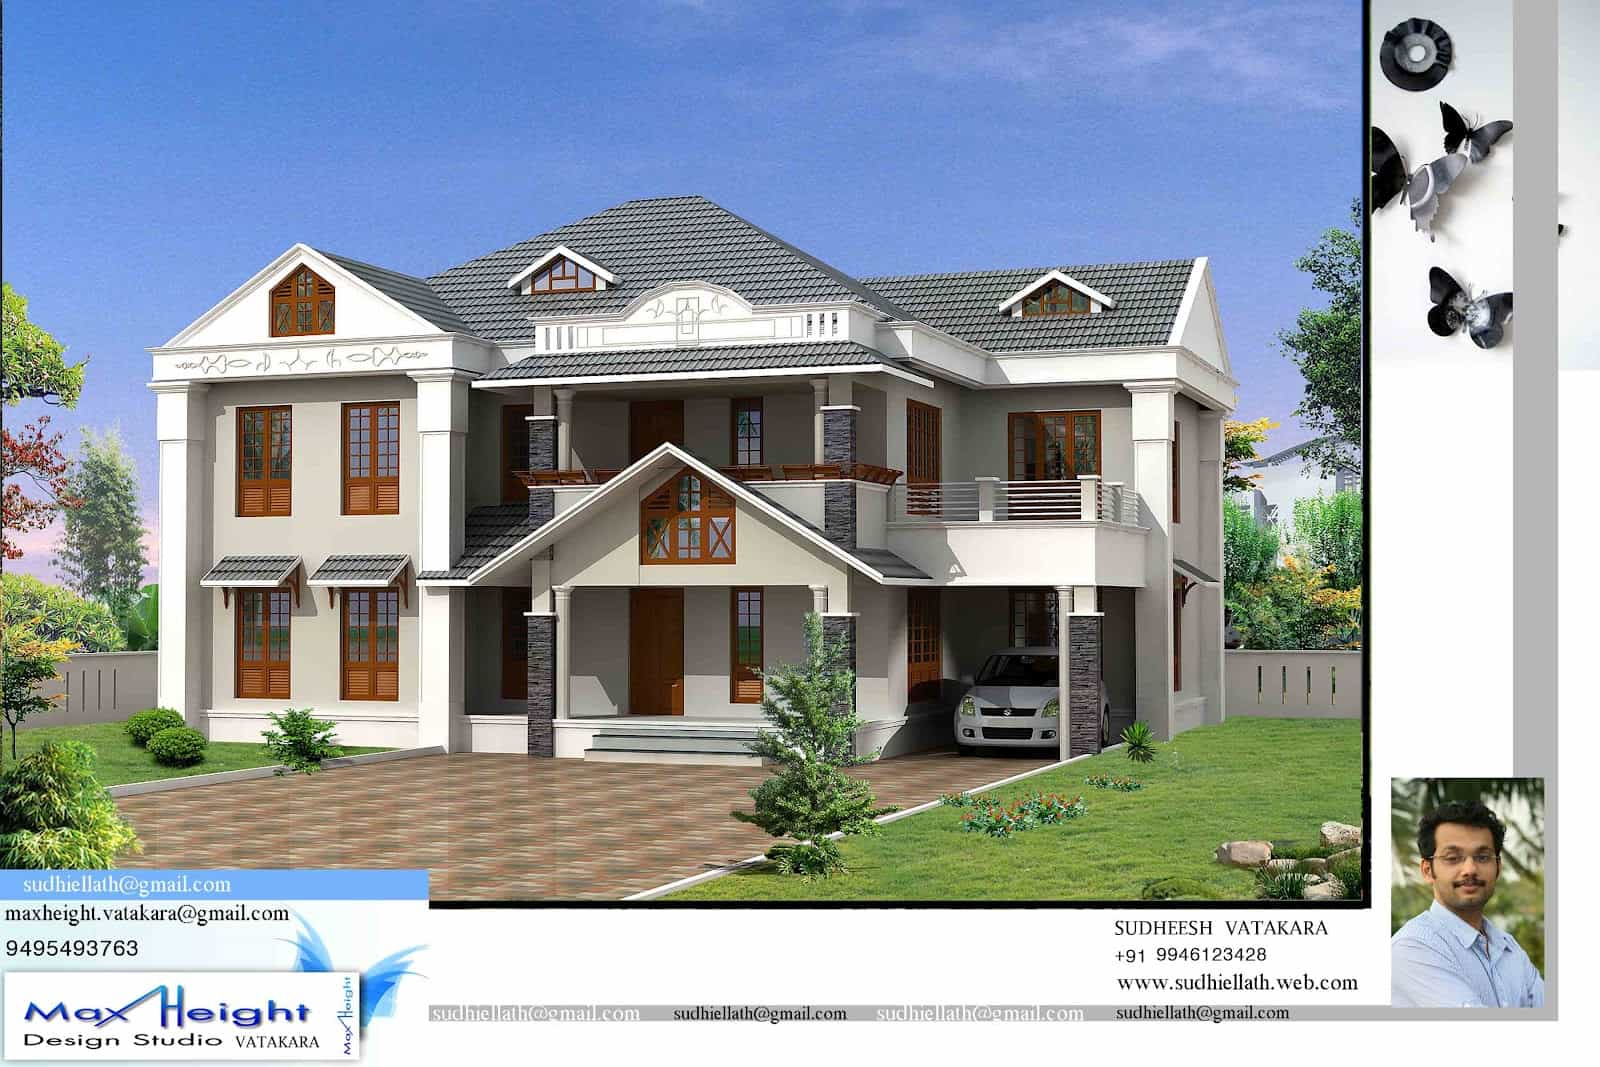 New model houses in kerala photos images for Kerala new model house plan